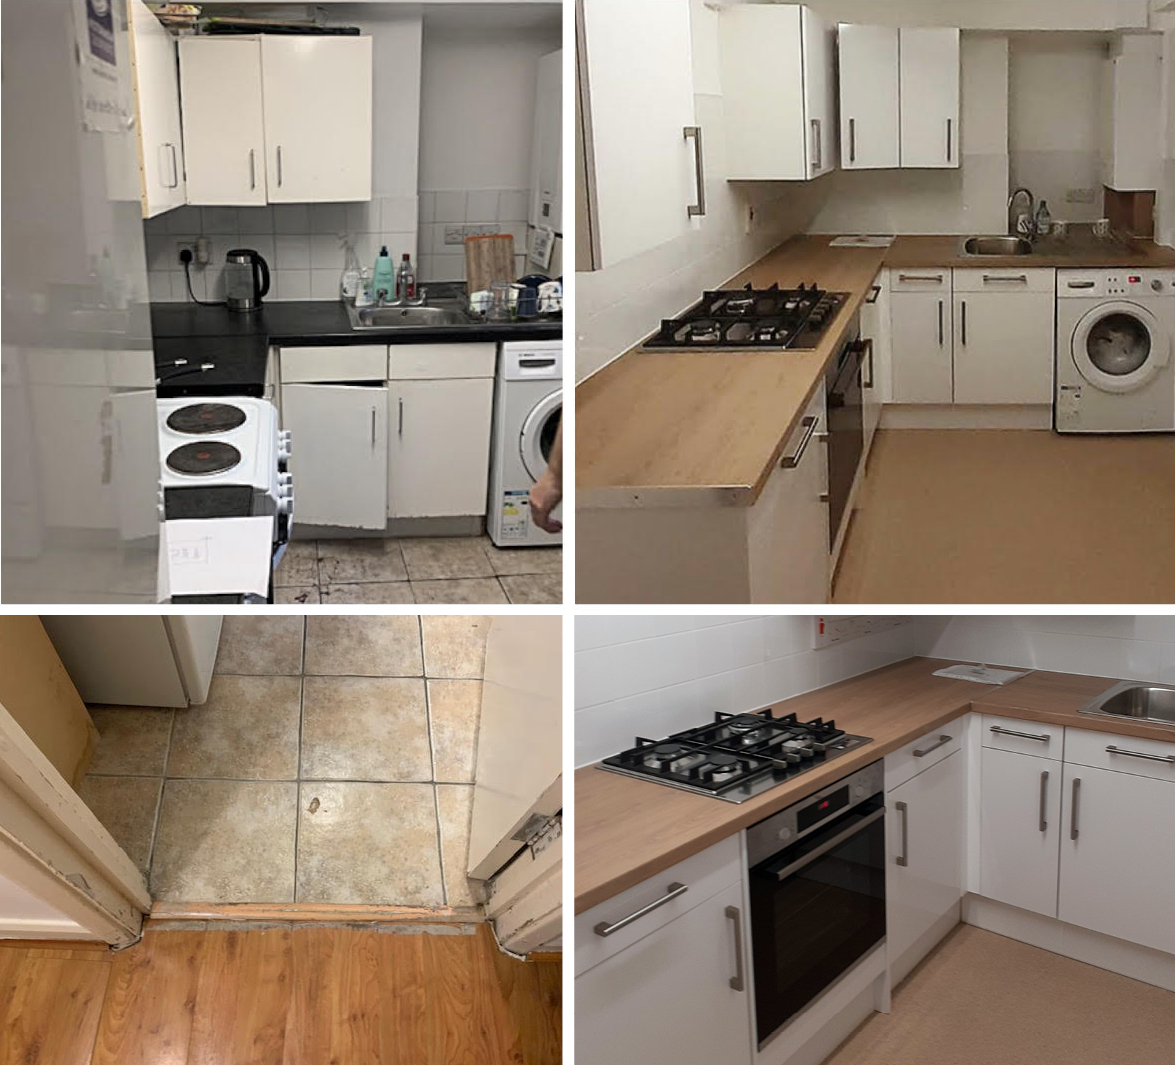 Chigwell Group kitchen installation update